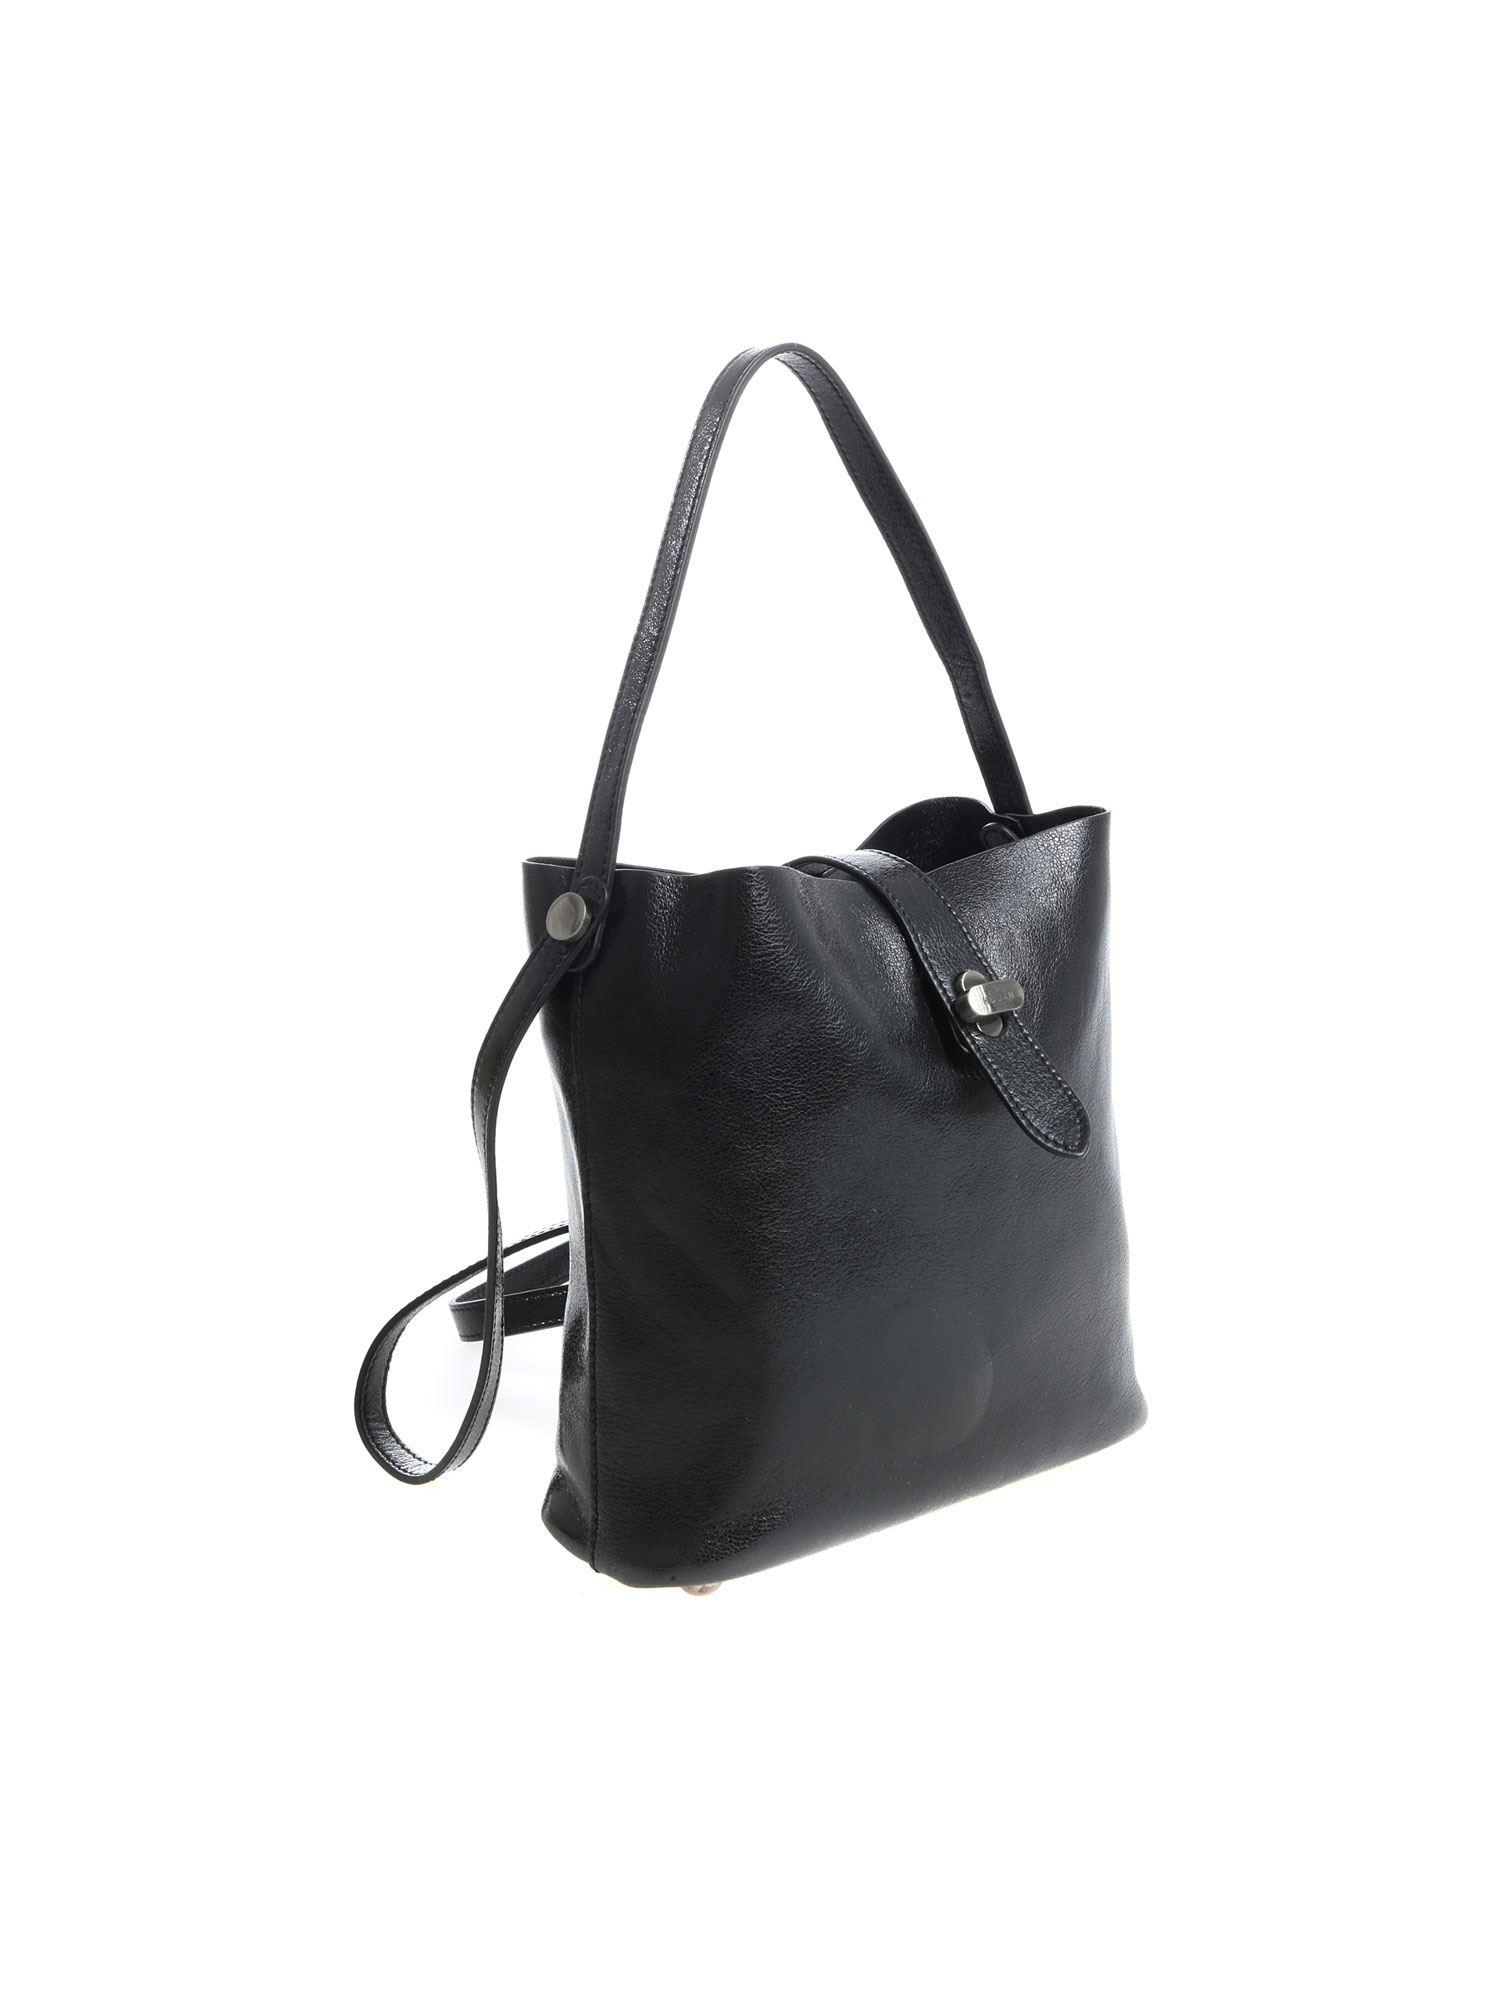 Hogan Black Leather Shoulder Bag in Black - Lyst 9185179afea30